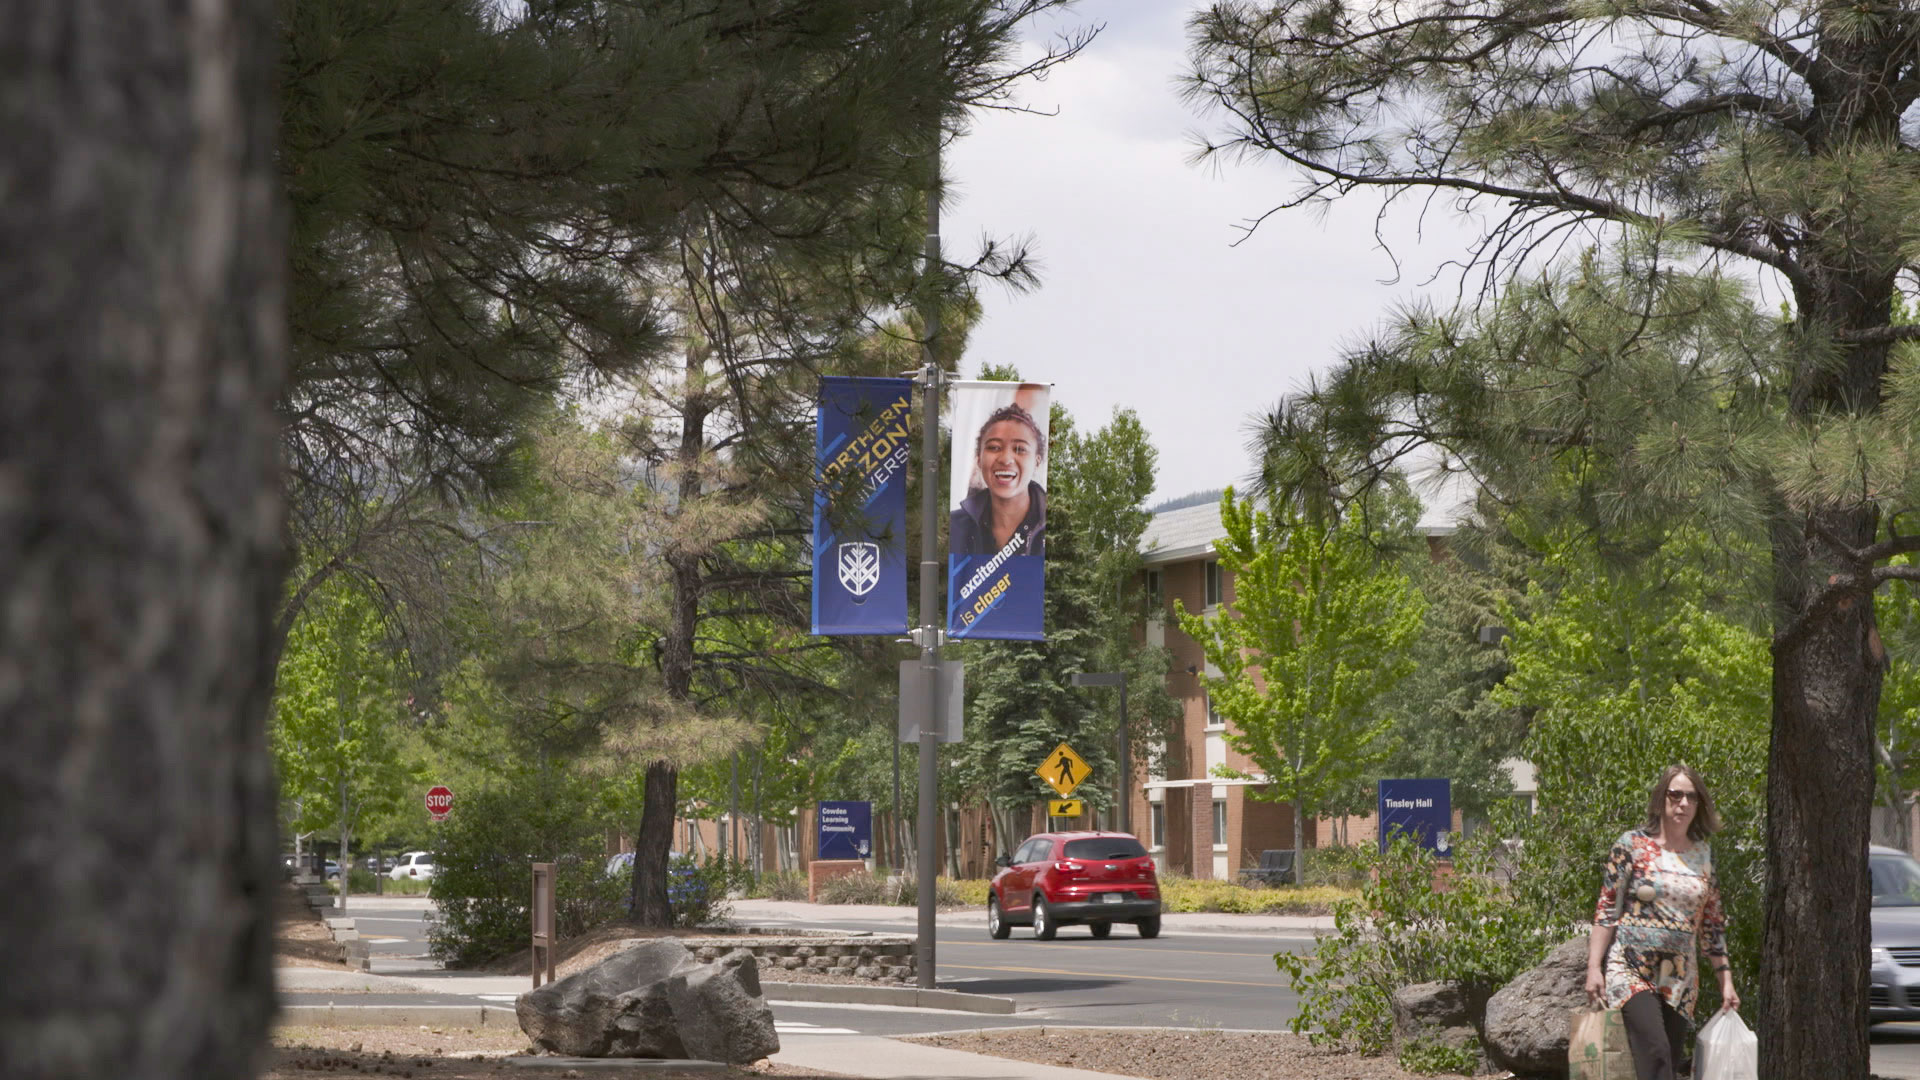 The Northern Arizona University campus in Flagstaff, Arizona.